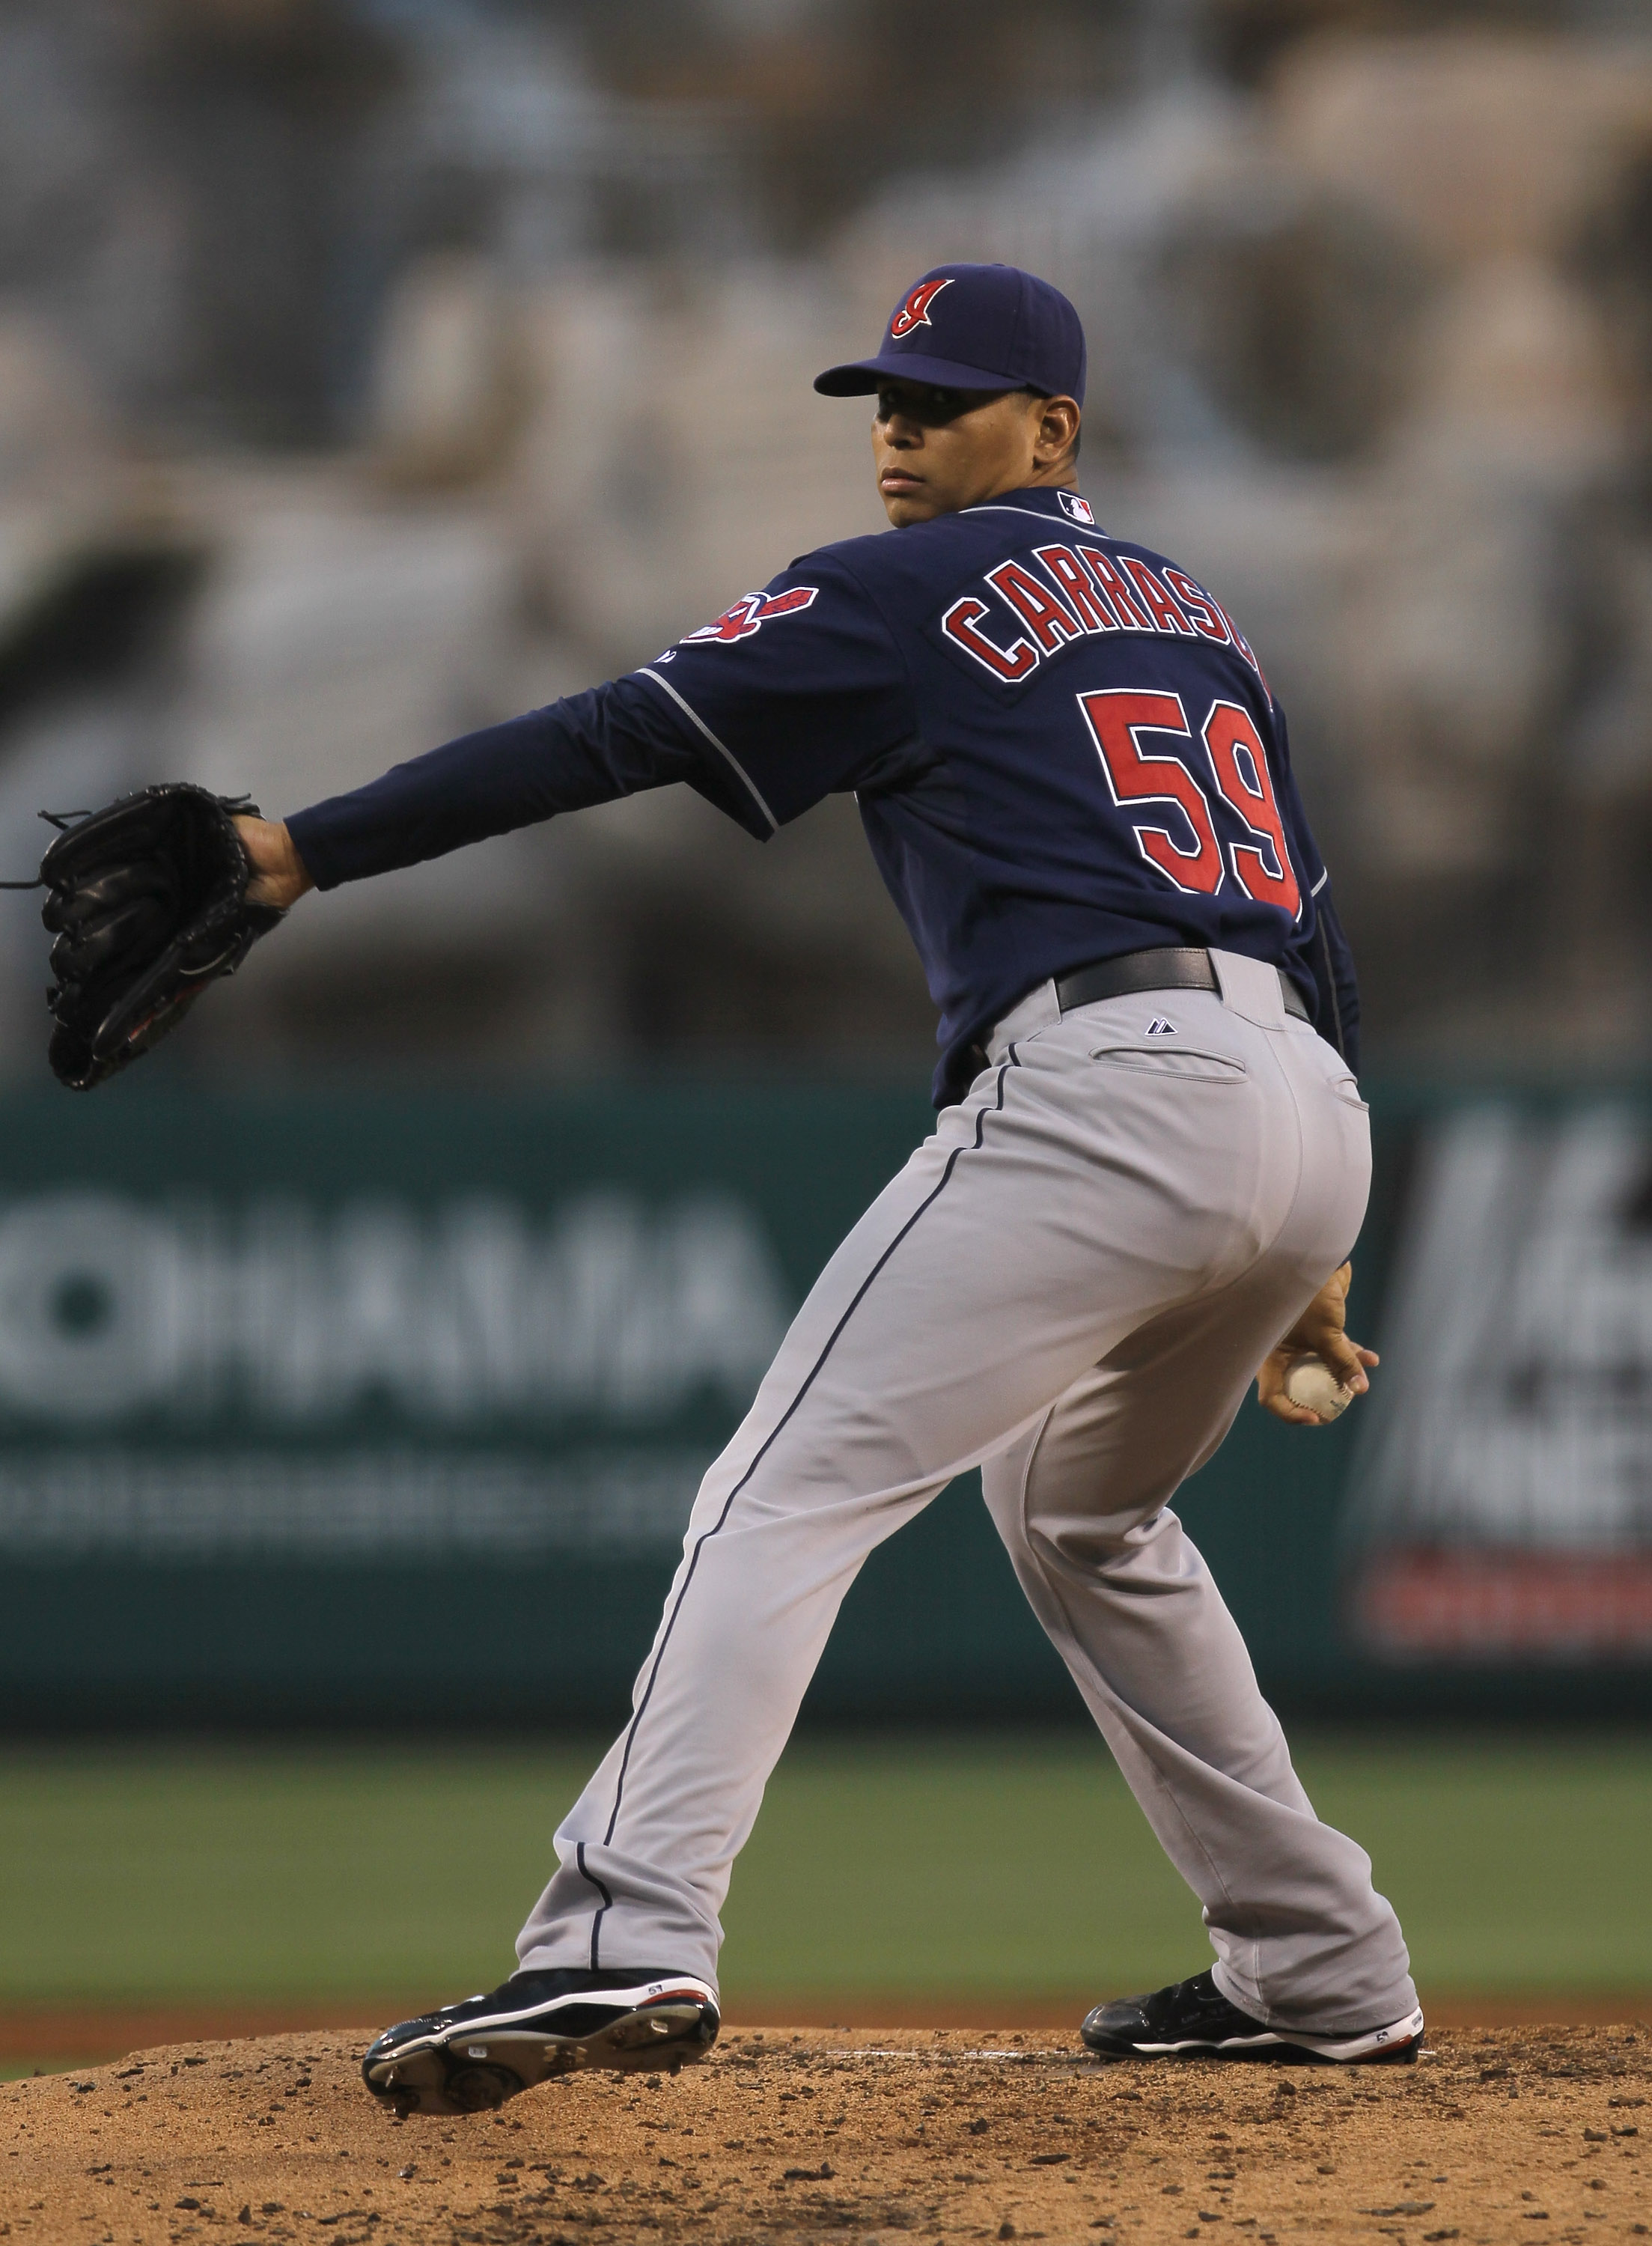 ANAHEIM, CA - SEPTEMBER 06:  Carlos Carrasco #59 of the Cleveland Indians throws a pitch against the Los Angeles Angels of Anaheim on September 6, 2010 at Angel Stadium in Anaheim, California.  (Photo by Stephen Dunn/Getty Images)